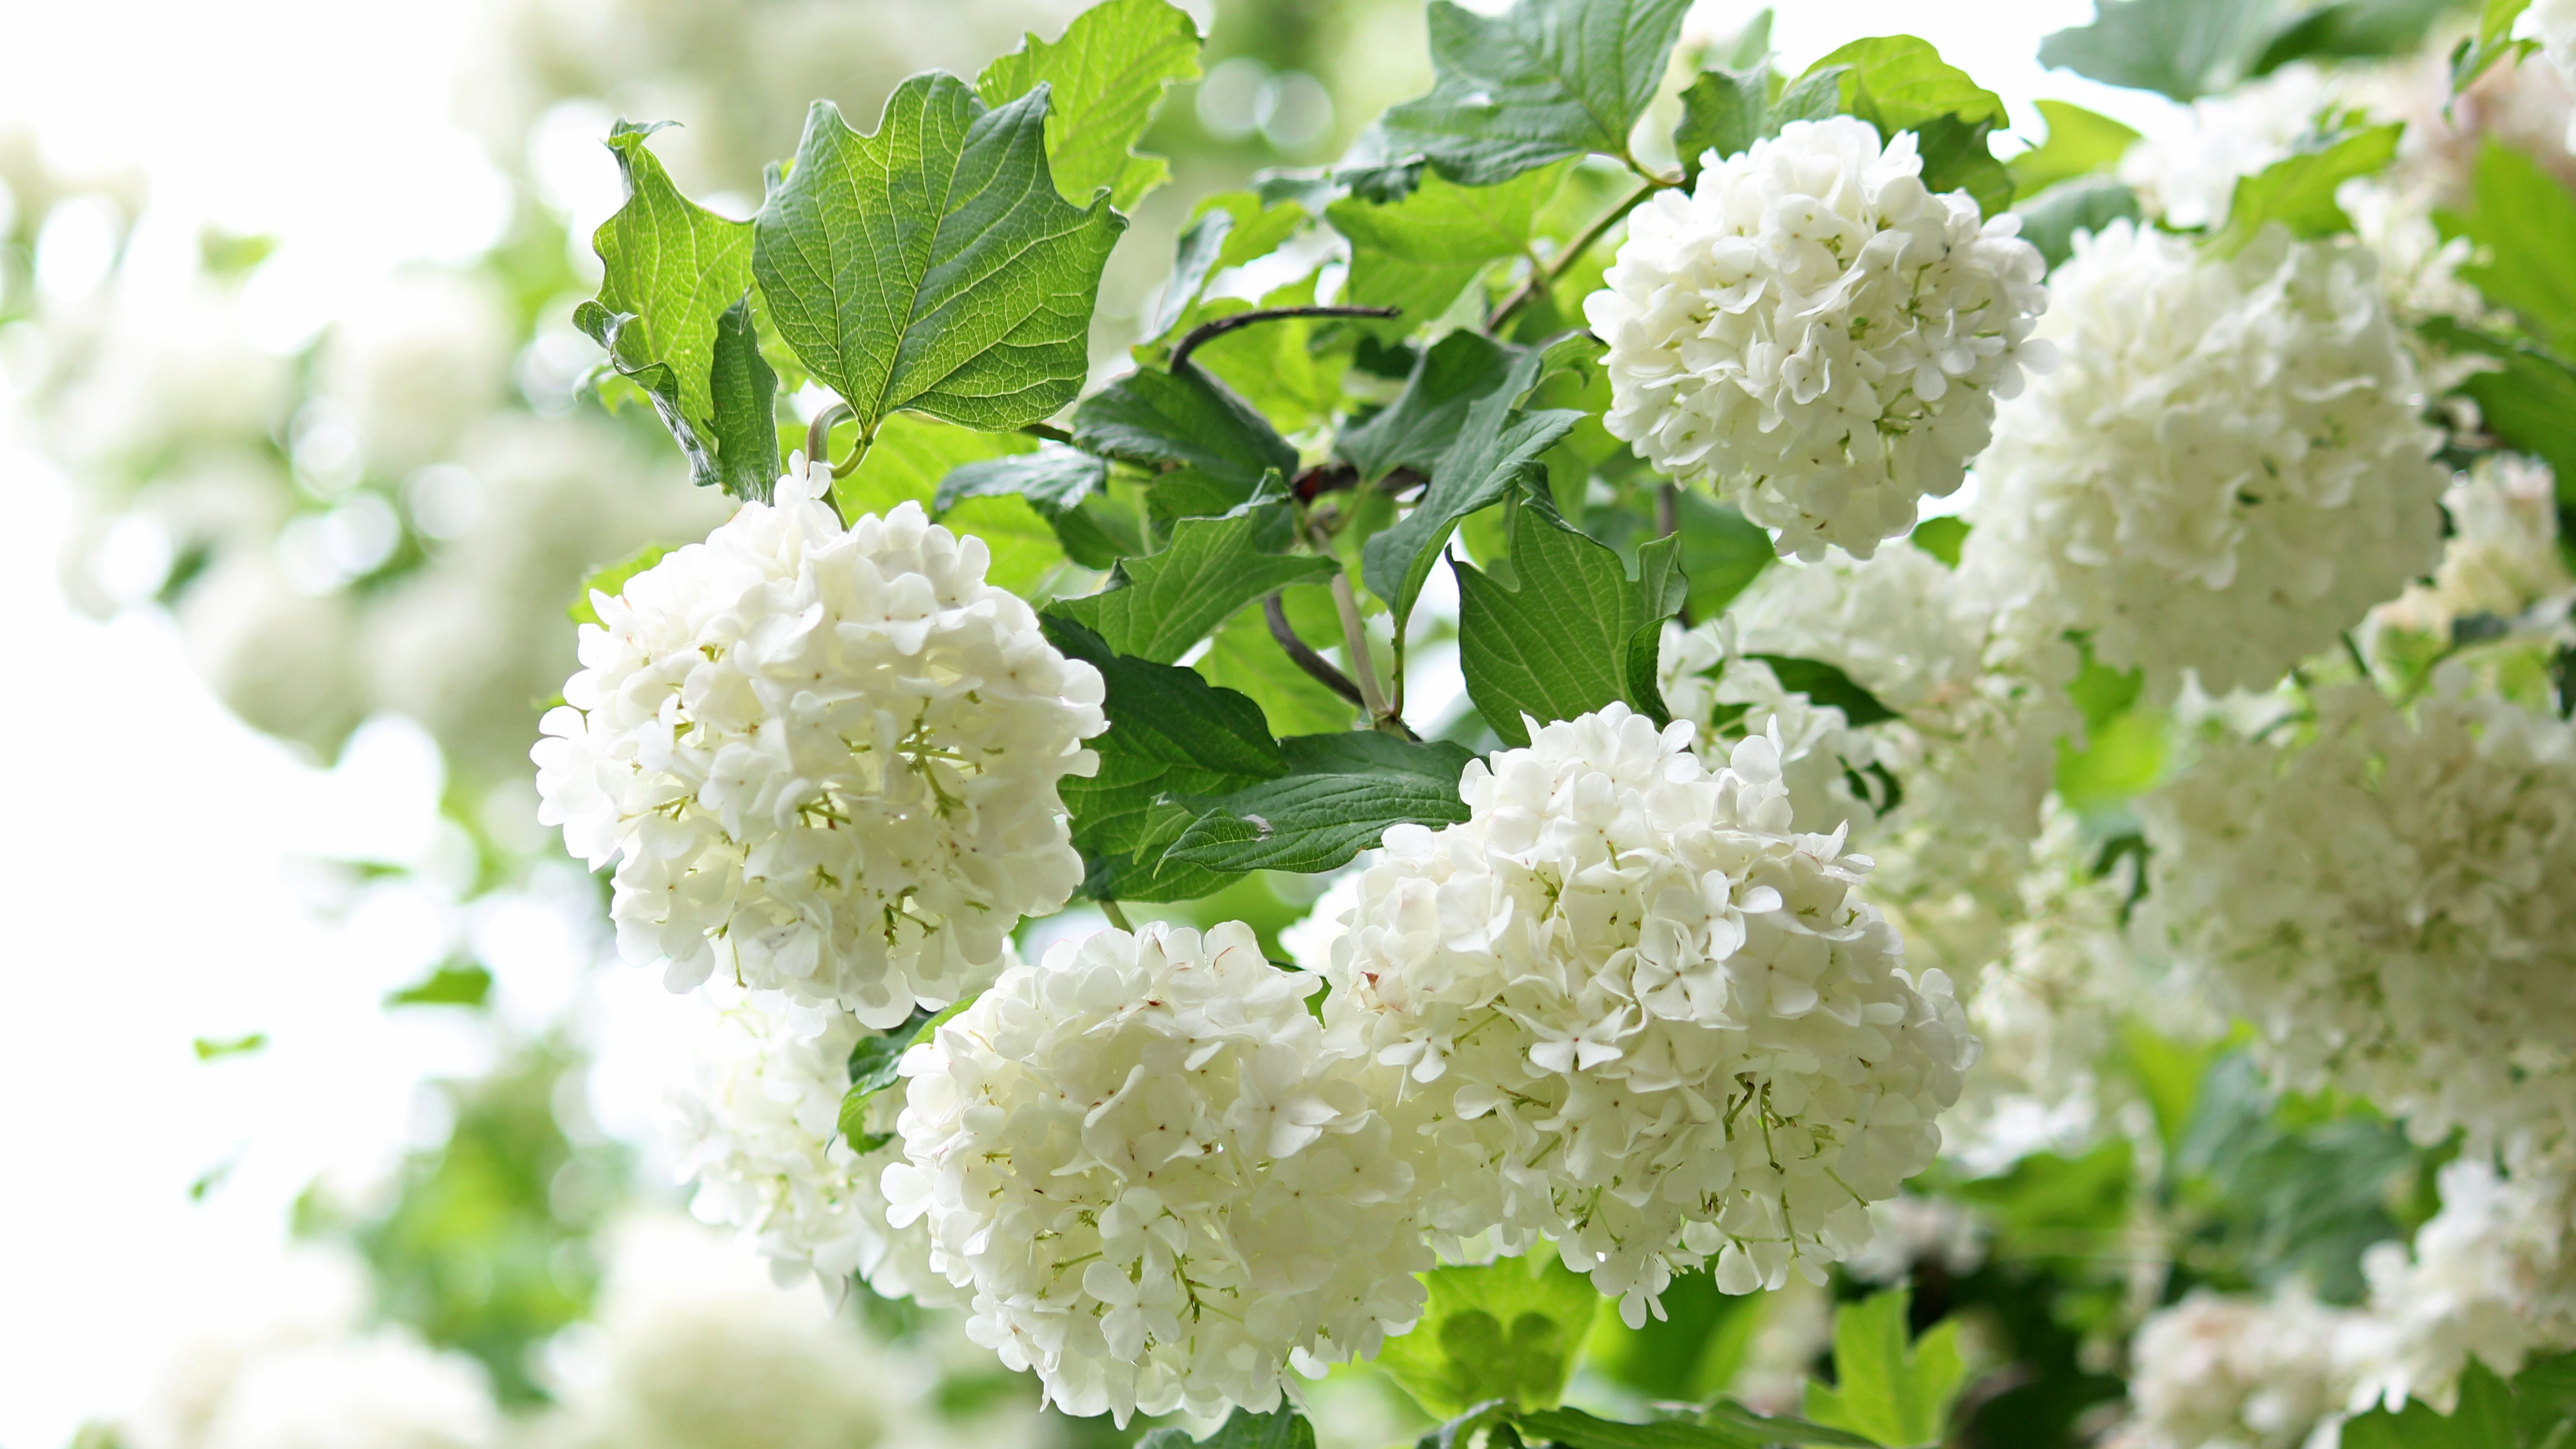 Viburnum Shrubs Care And Growing Guide